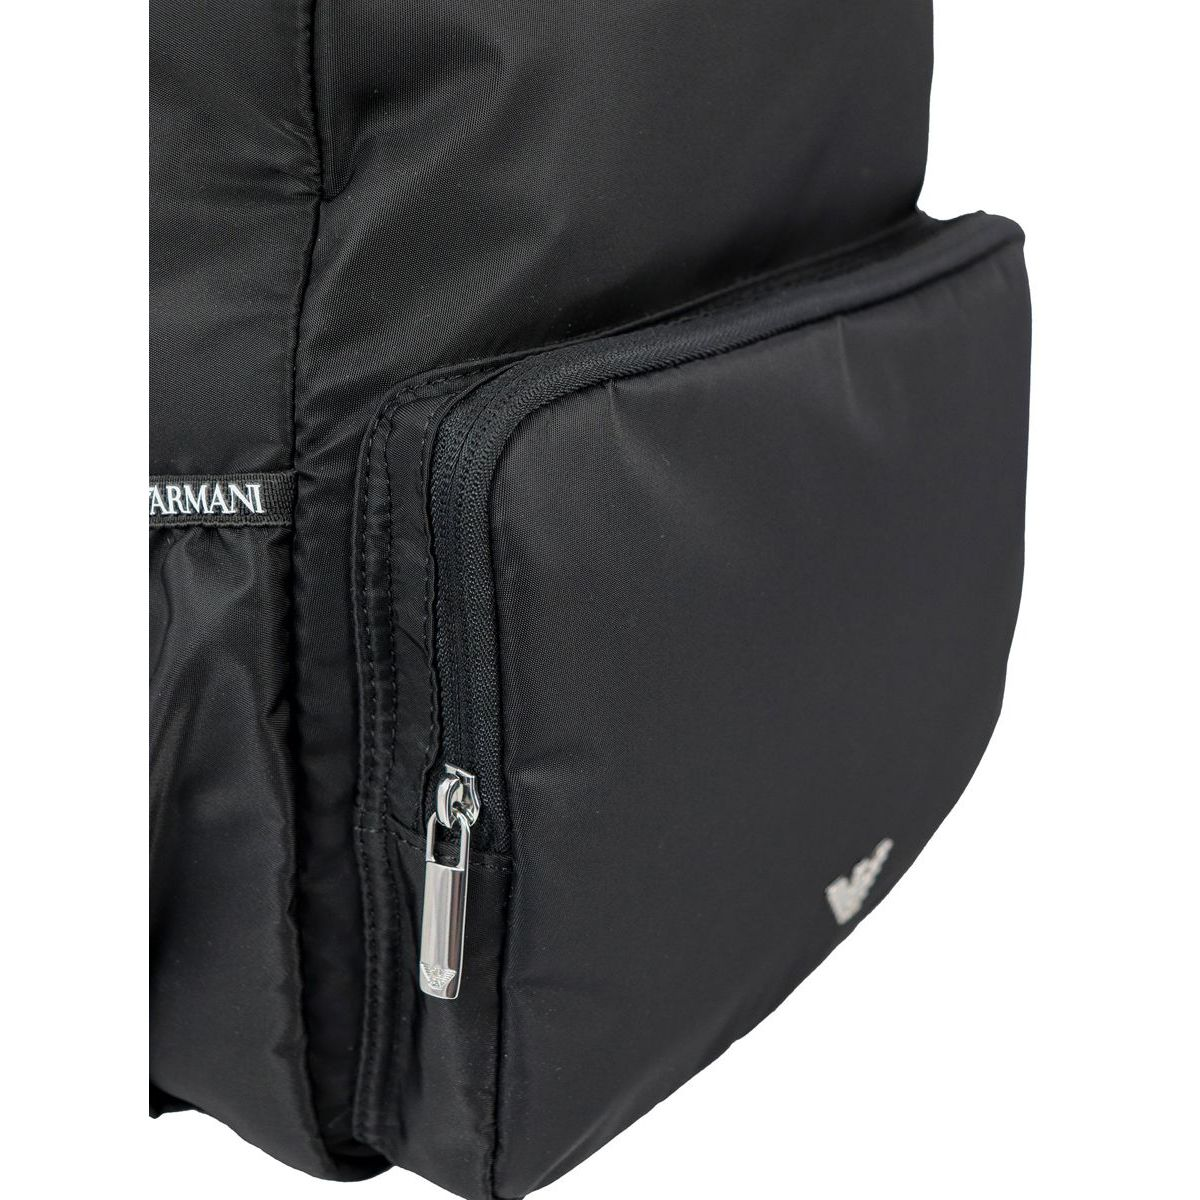 """Mummy bag"" variant backpack with bottle holder Black Emporio Armani"